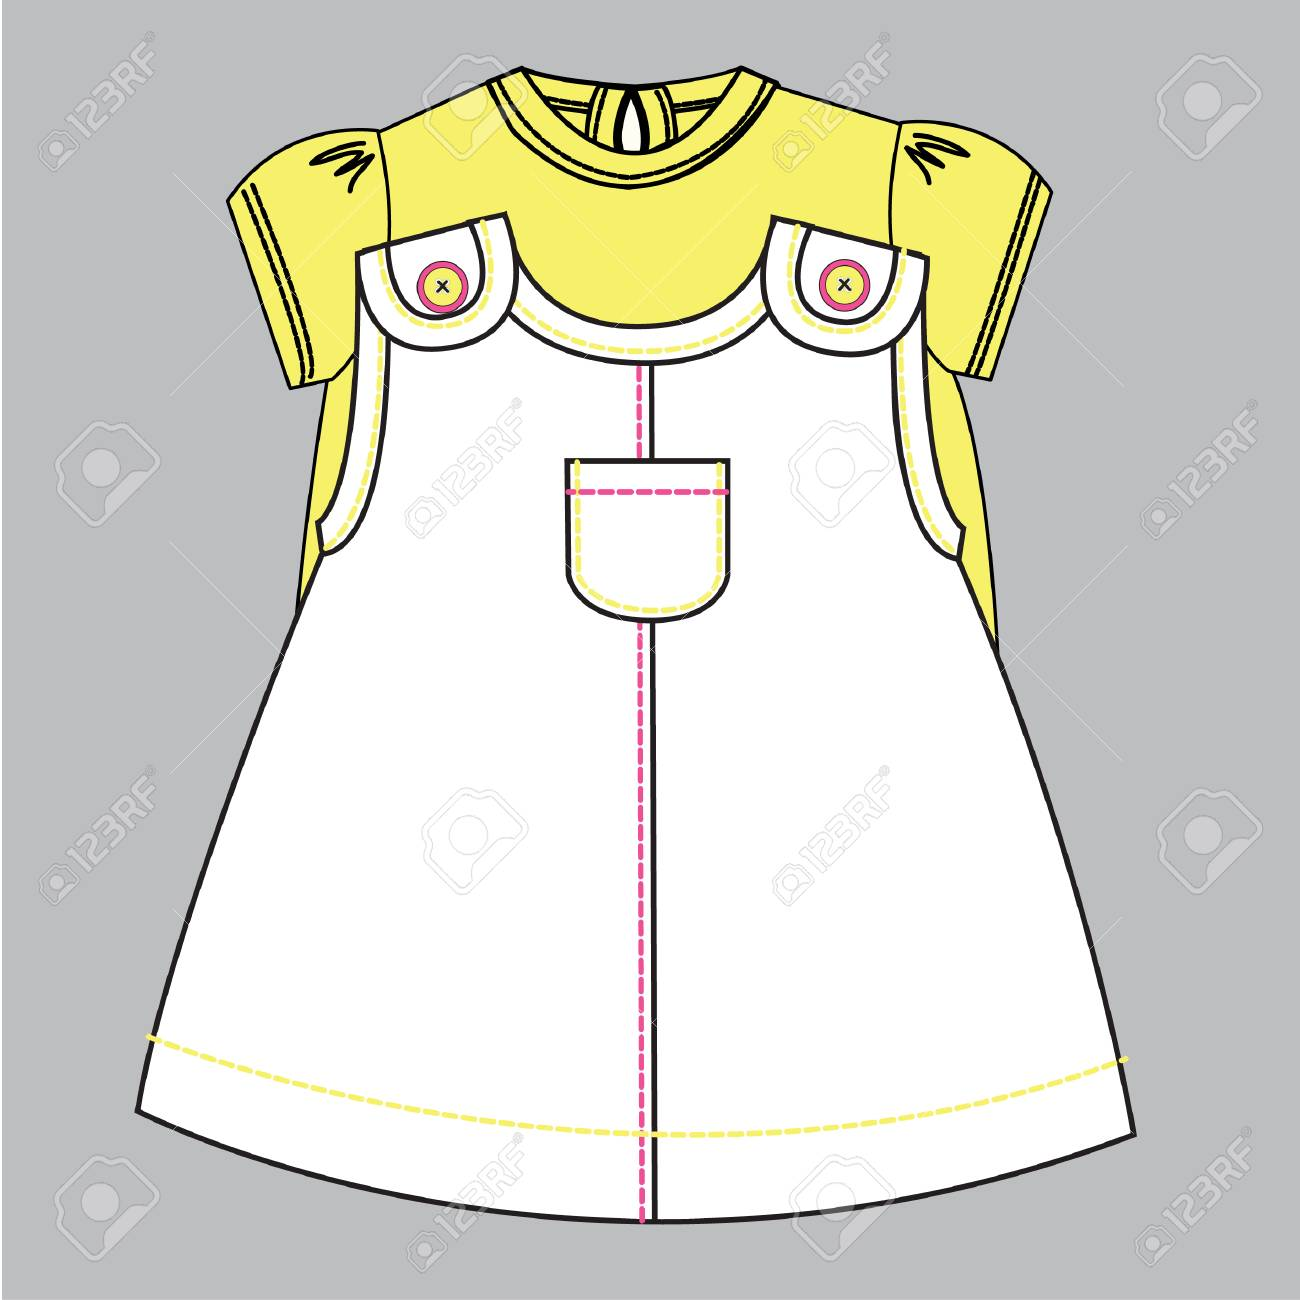 Baby Flat Sketch Template Isolated Royalty Free Cliparts, Vectors ...